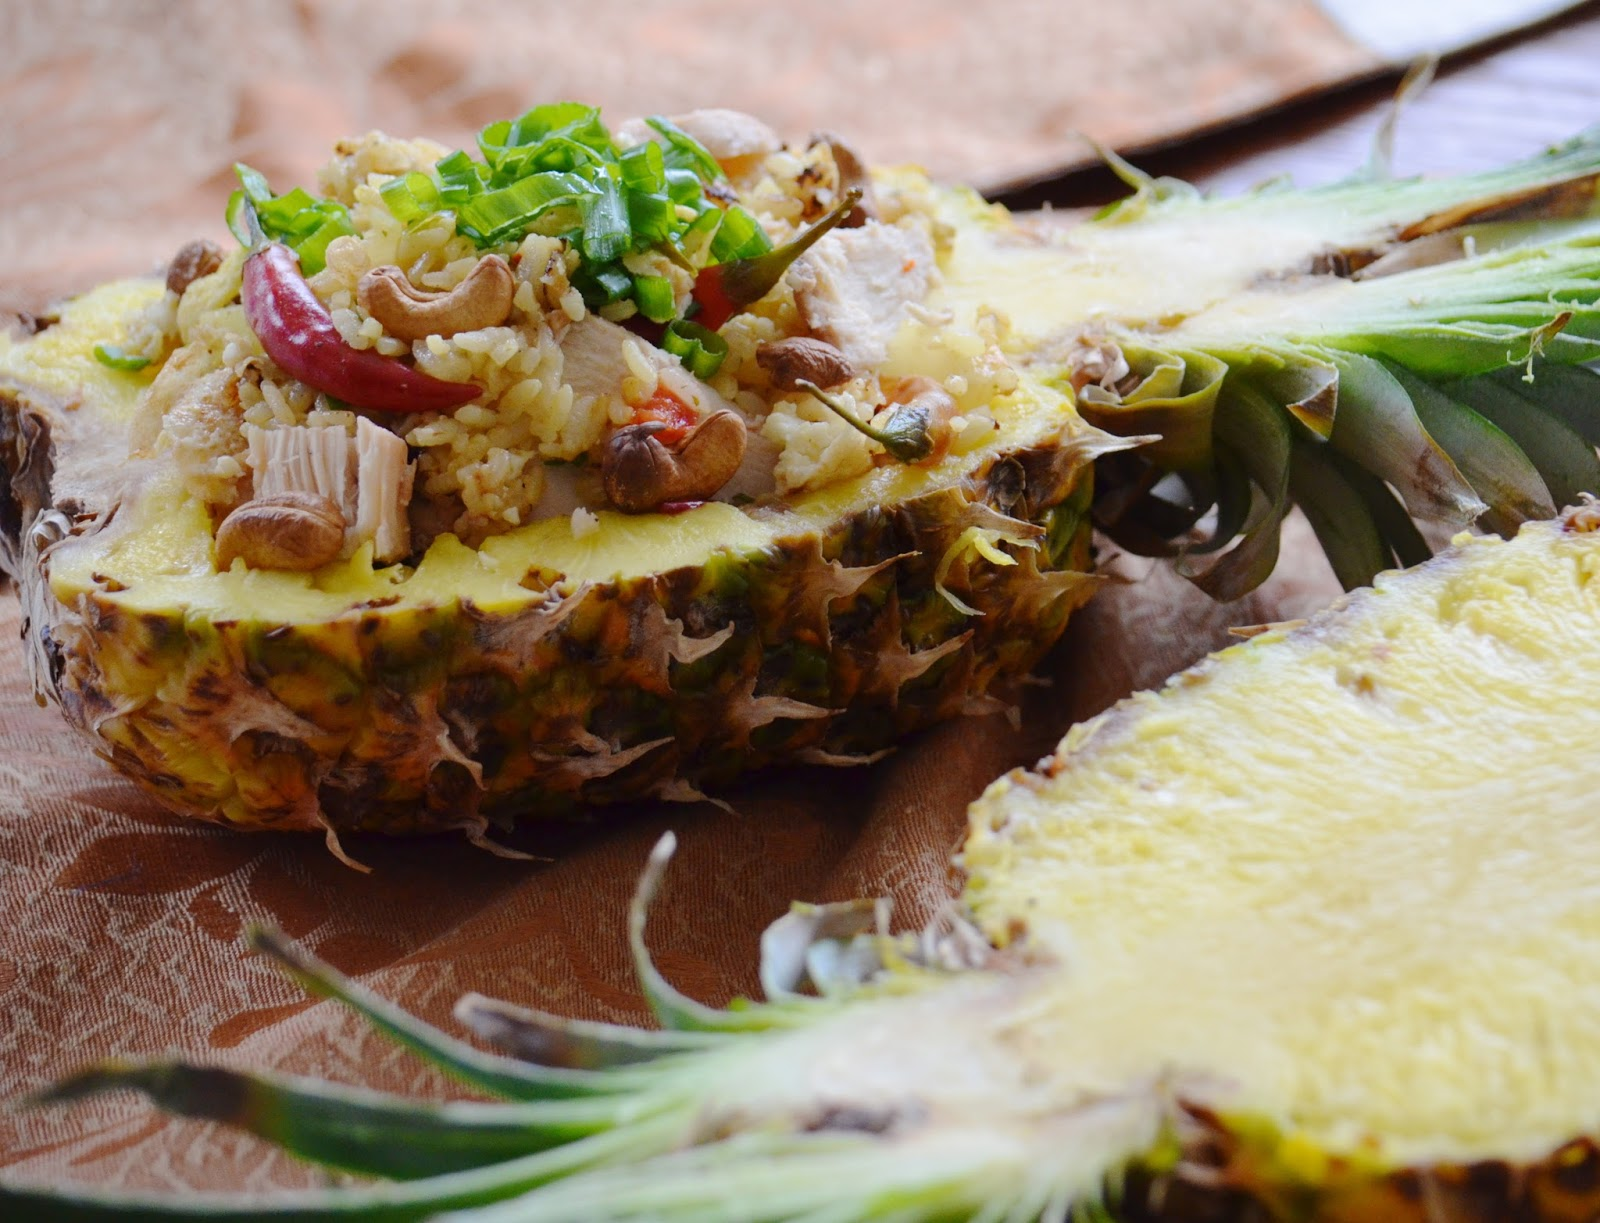 Thai Pineapple Fried Rice recipe Khao Pad Sapparot